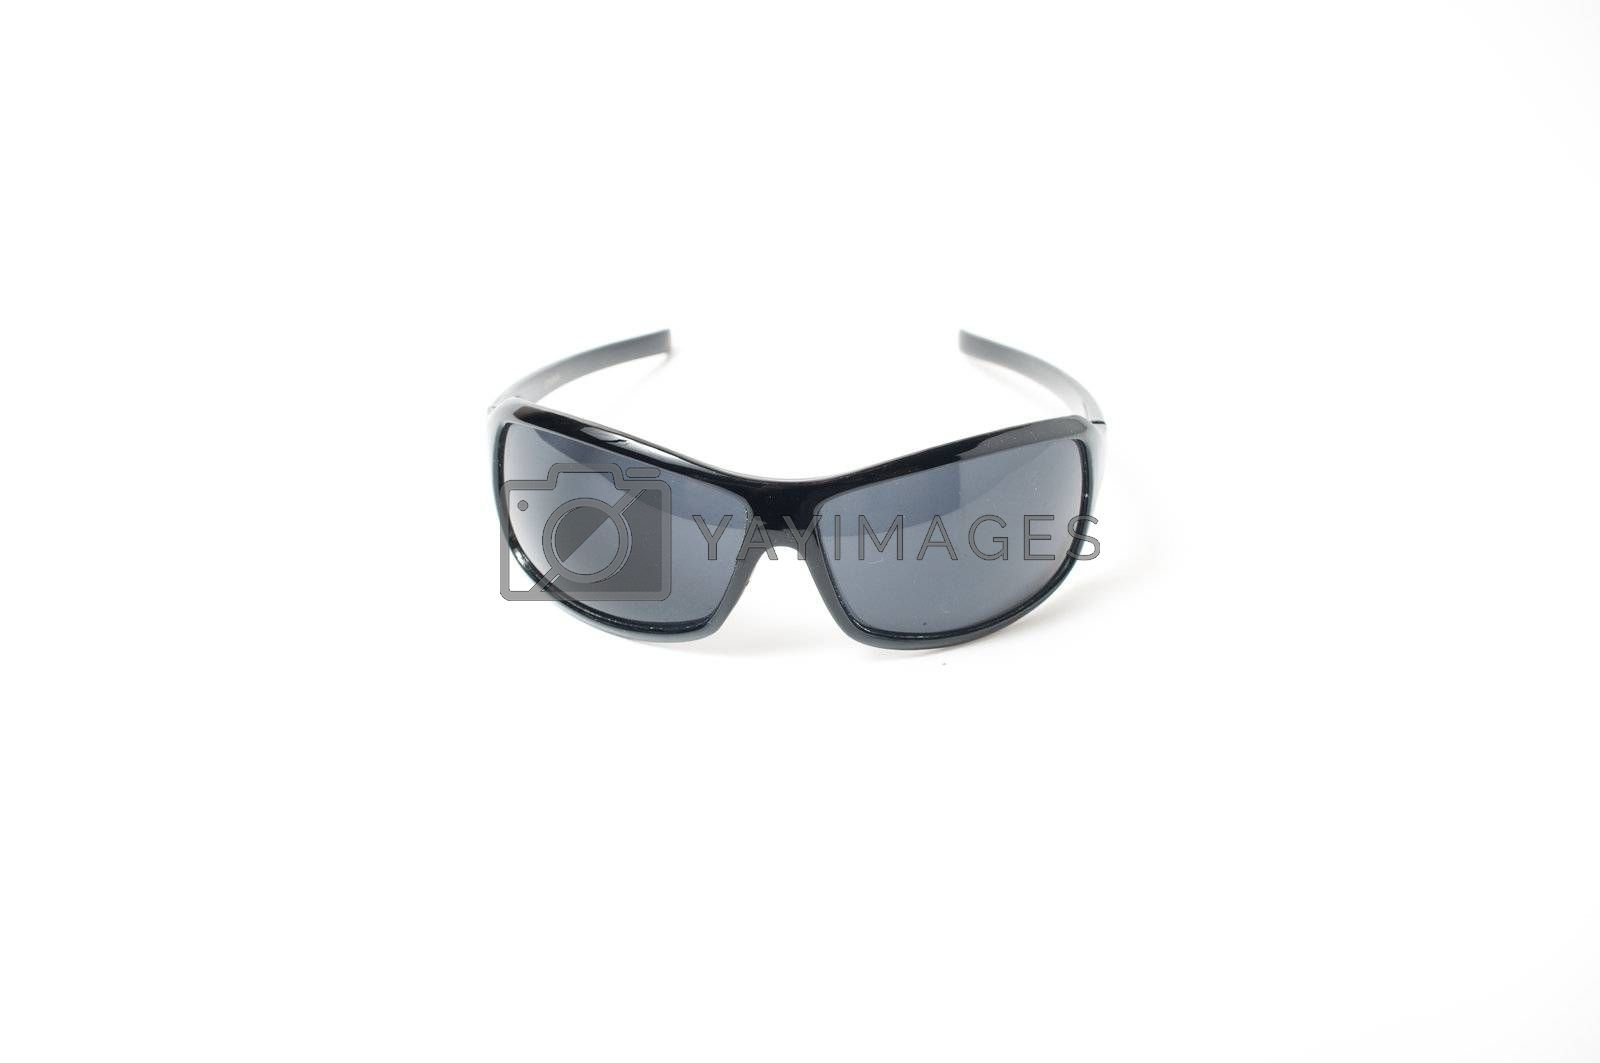 Royalty free image of sunglases by ksider